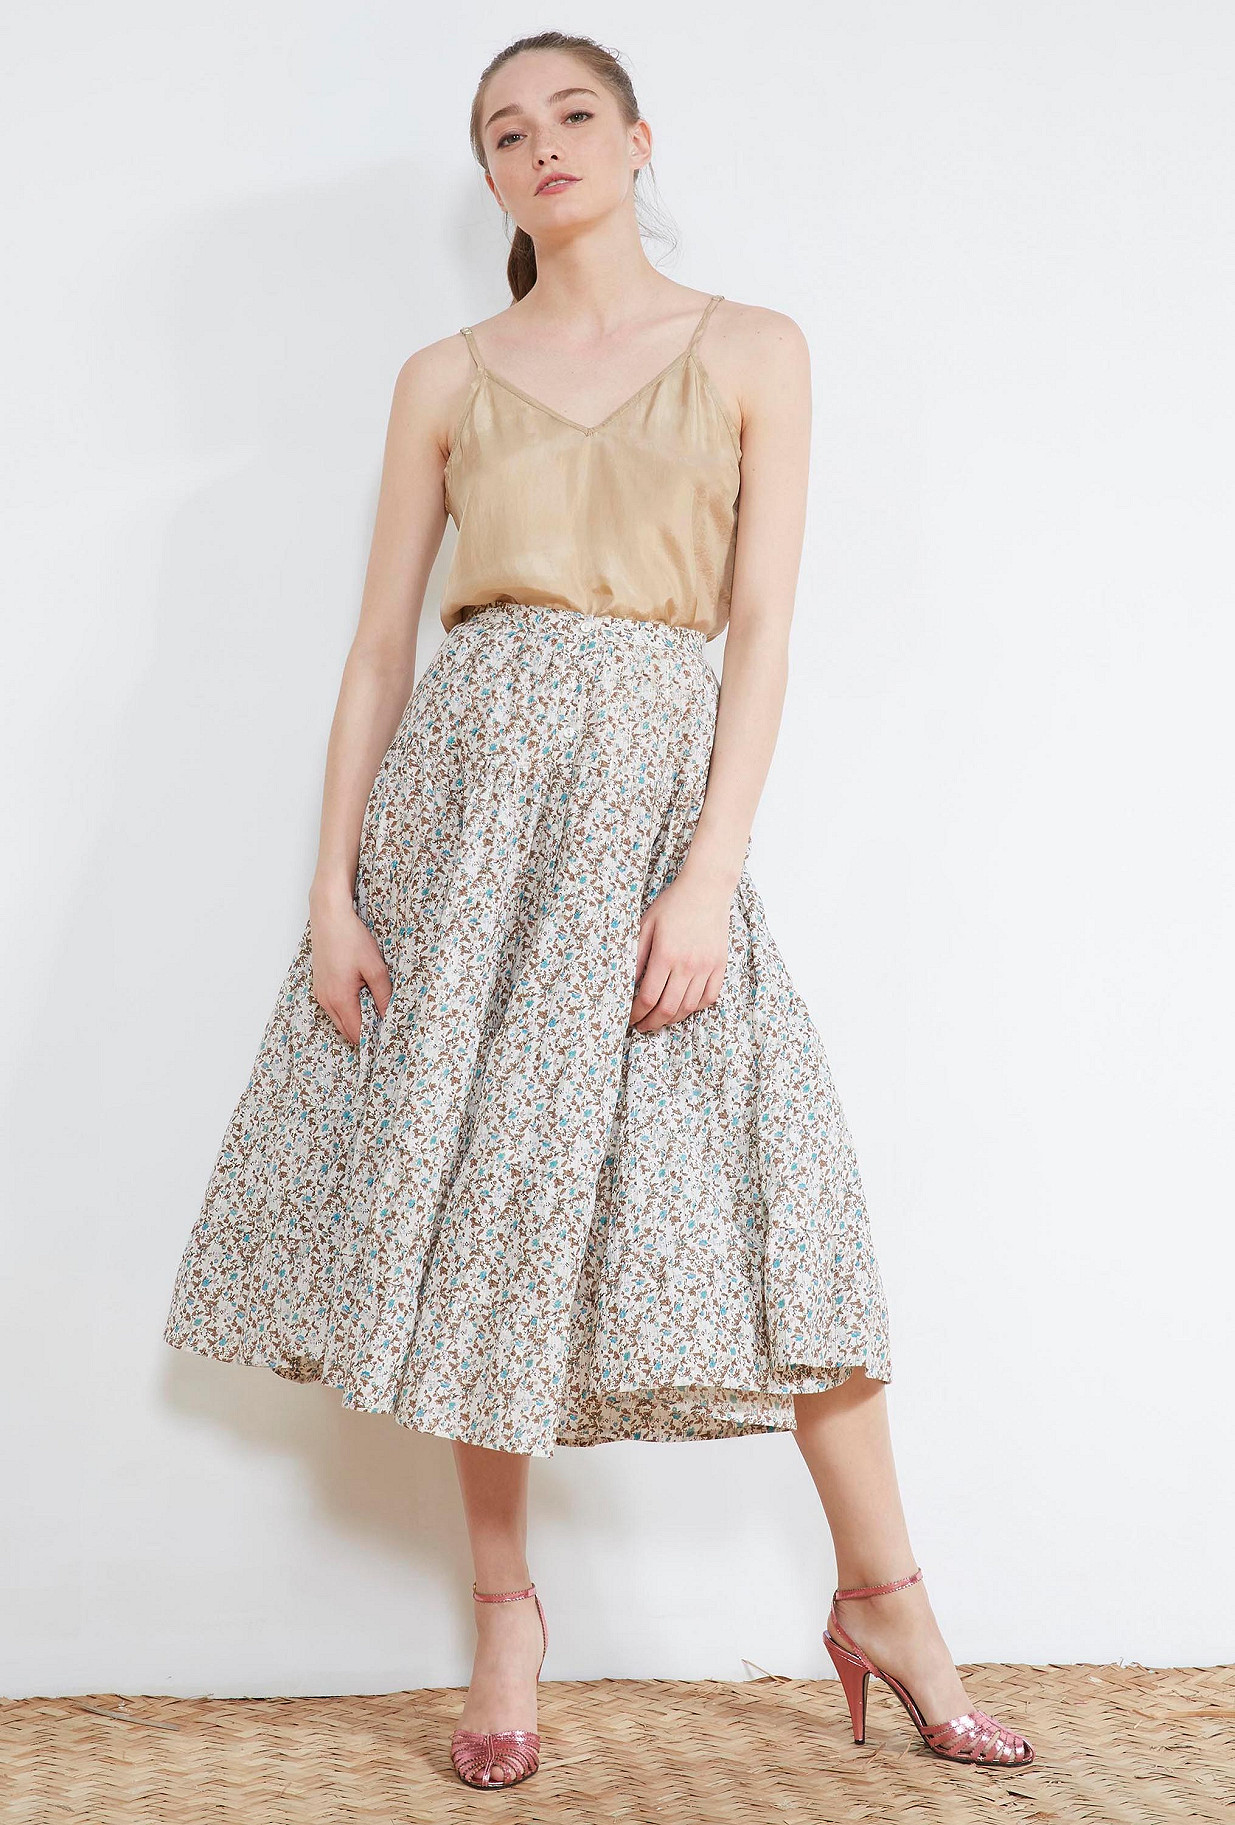 Floral print SKIRT Wight Mes Demoiselles Paris